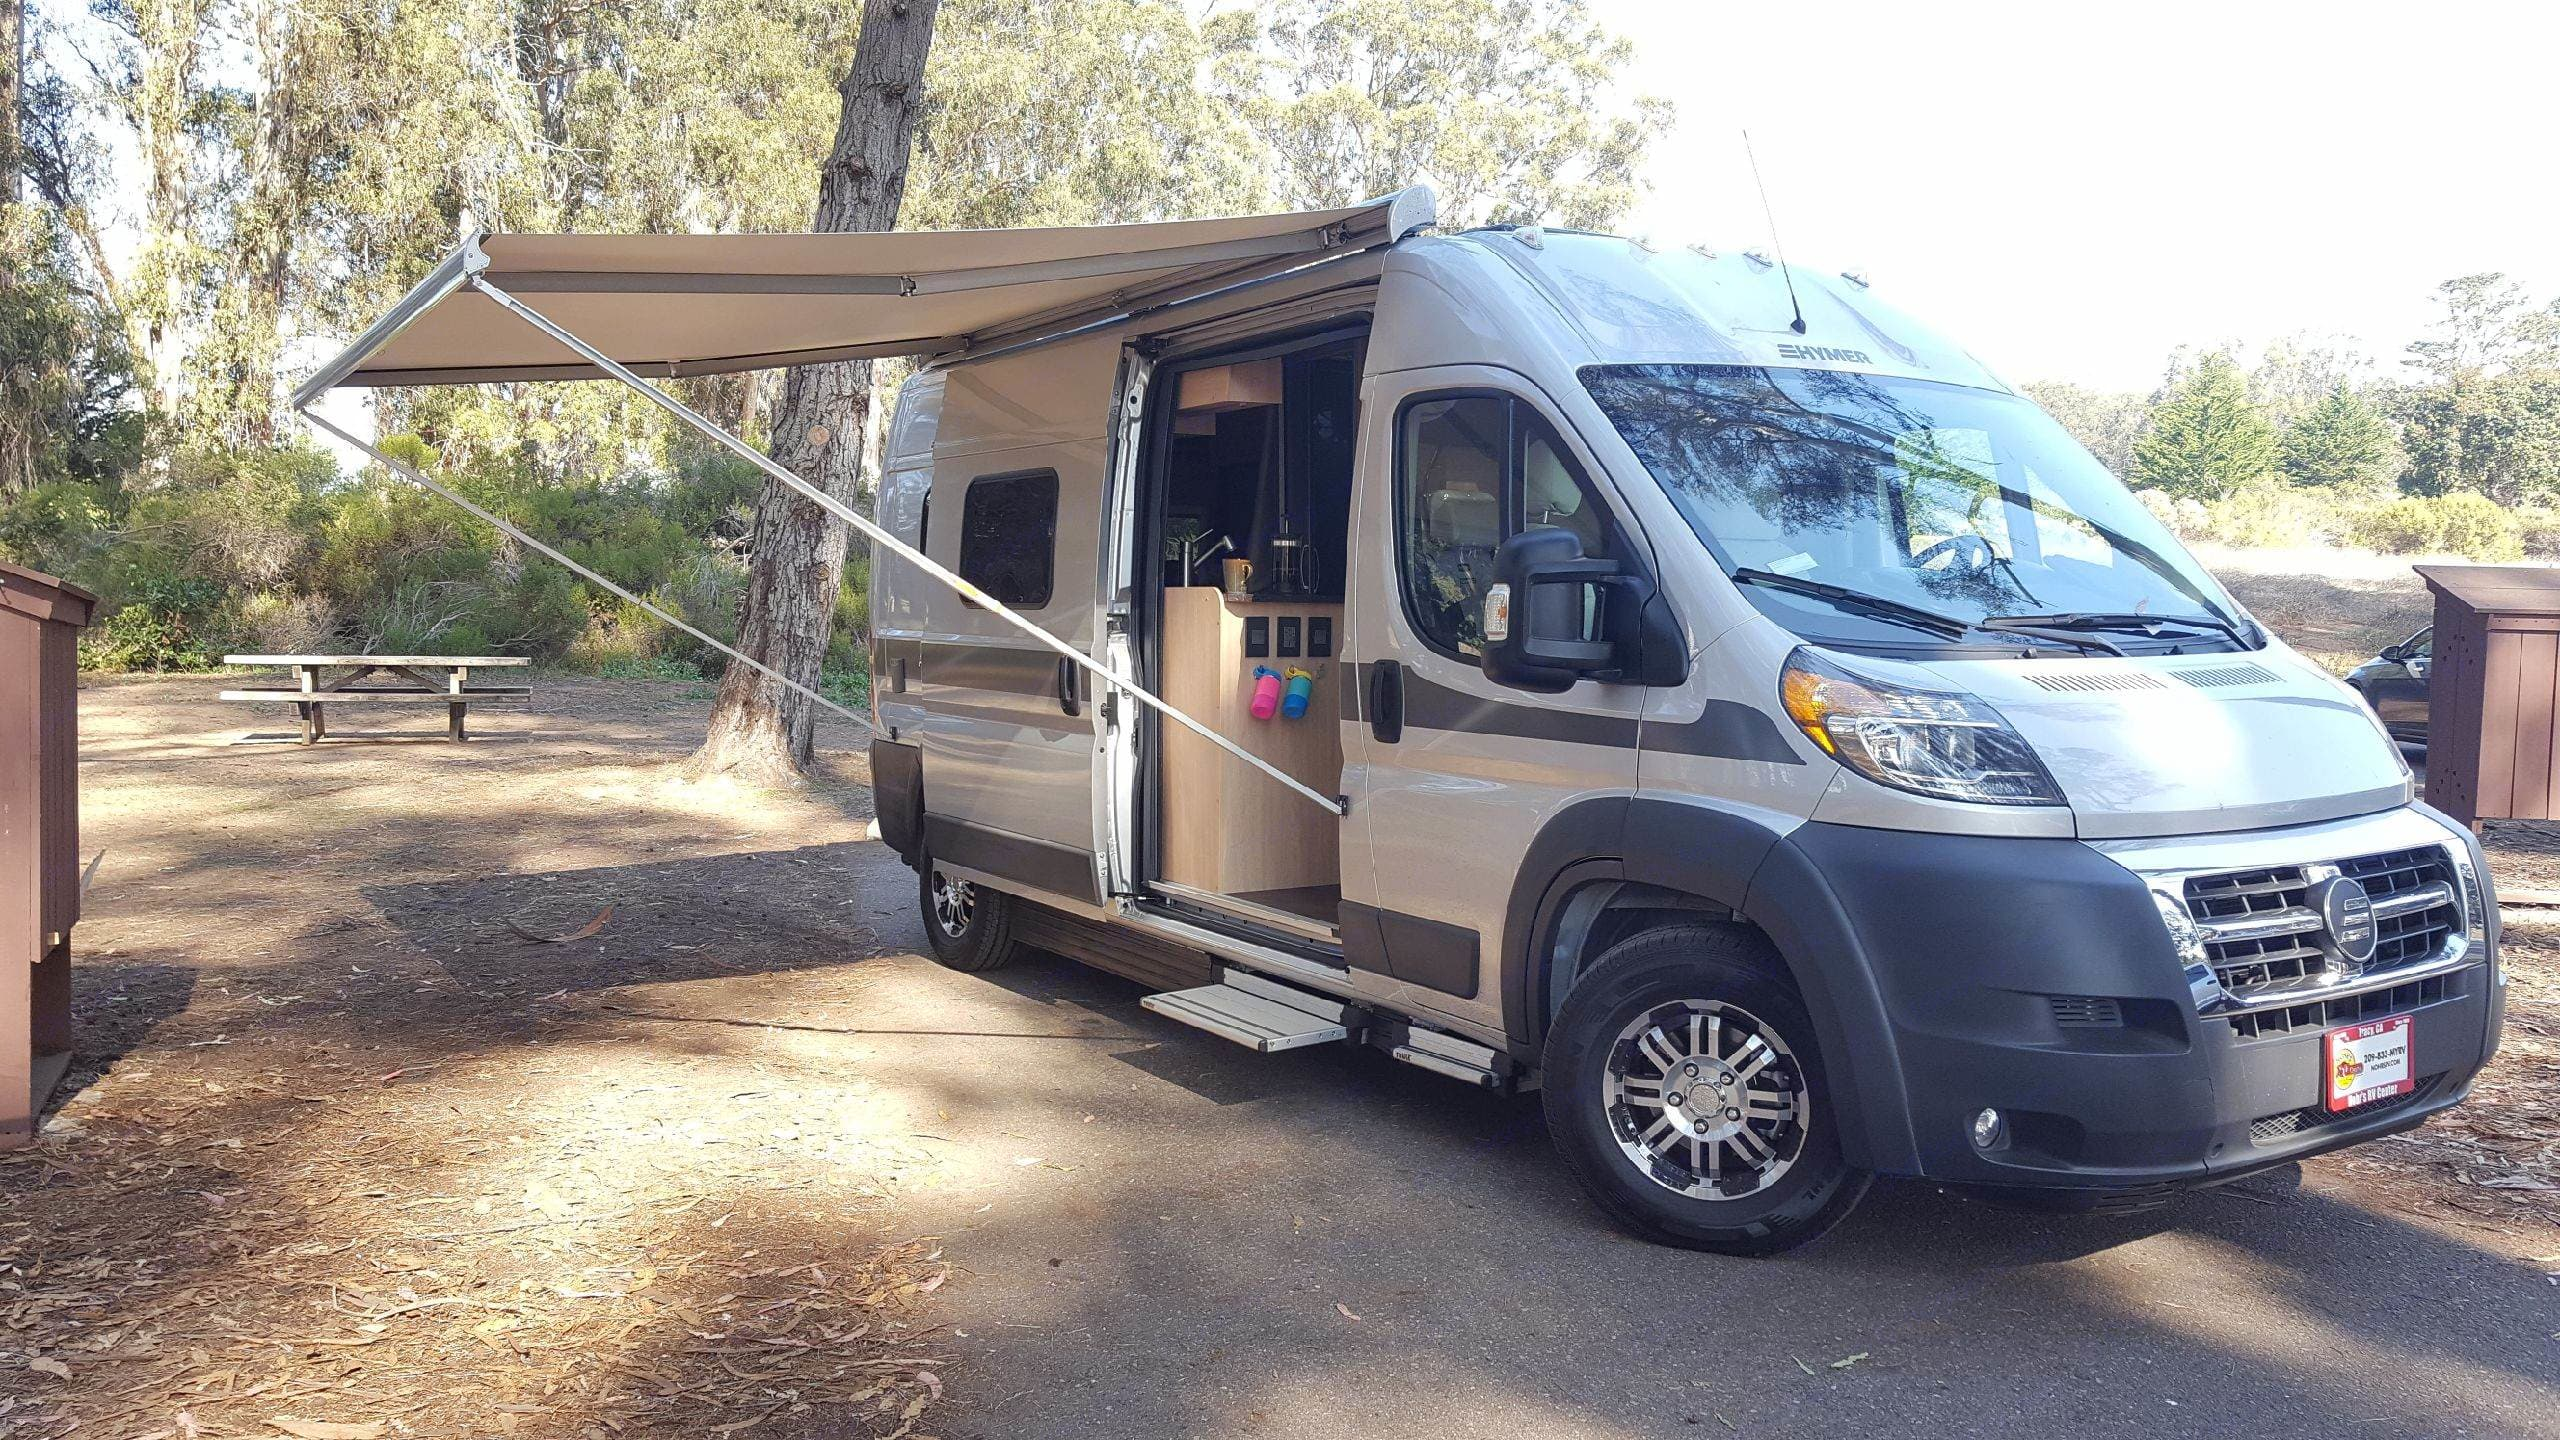 Electronic awning provides plenty of shade!  The power steps makes getting in and out easy, especially for kids.  . Hymer Aktiv 1.0 2018